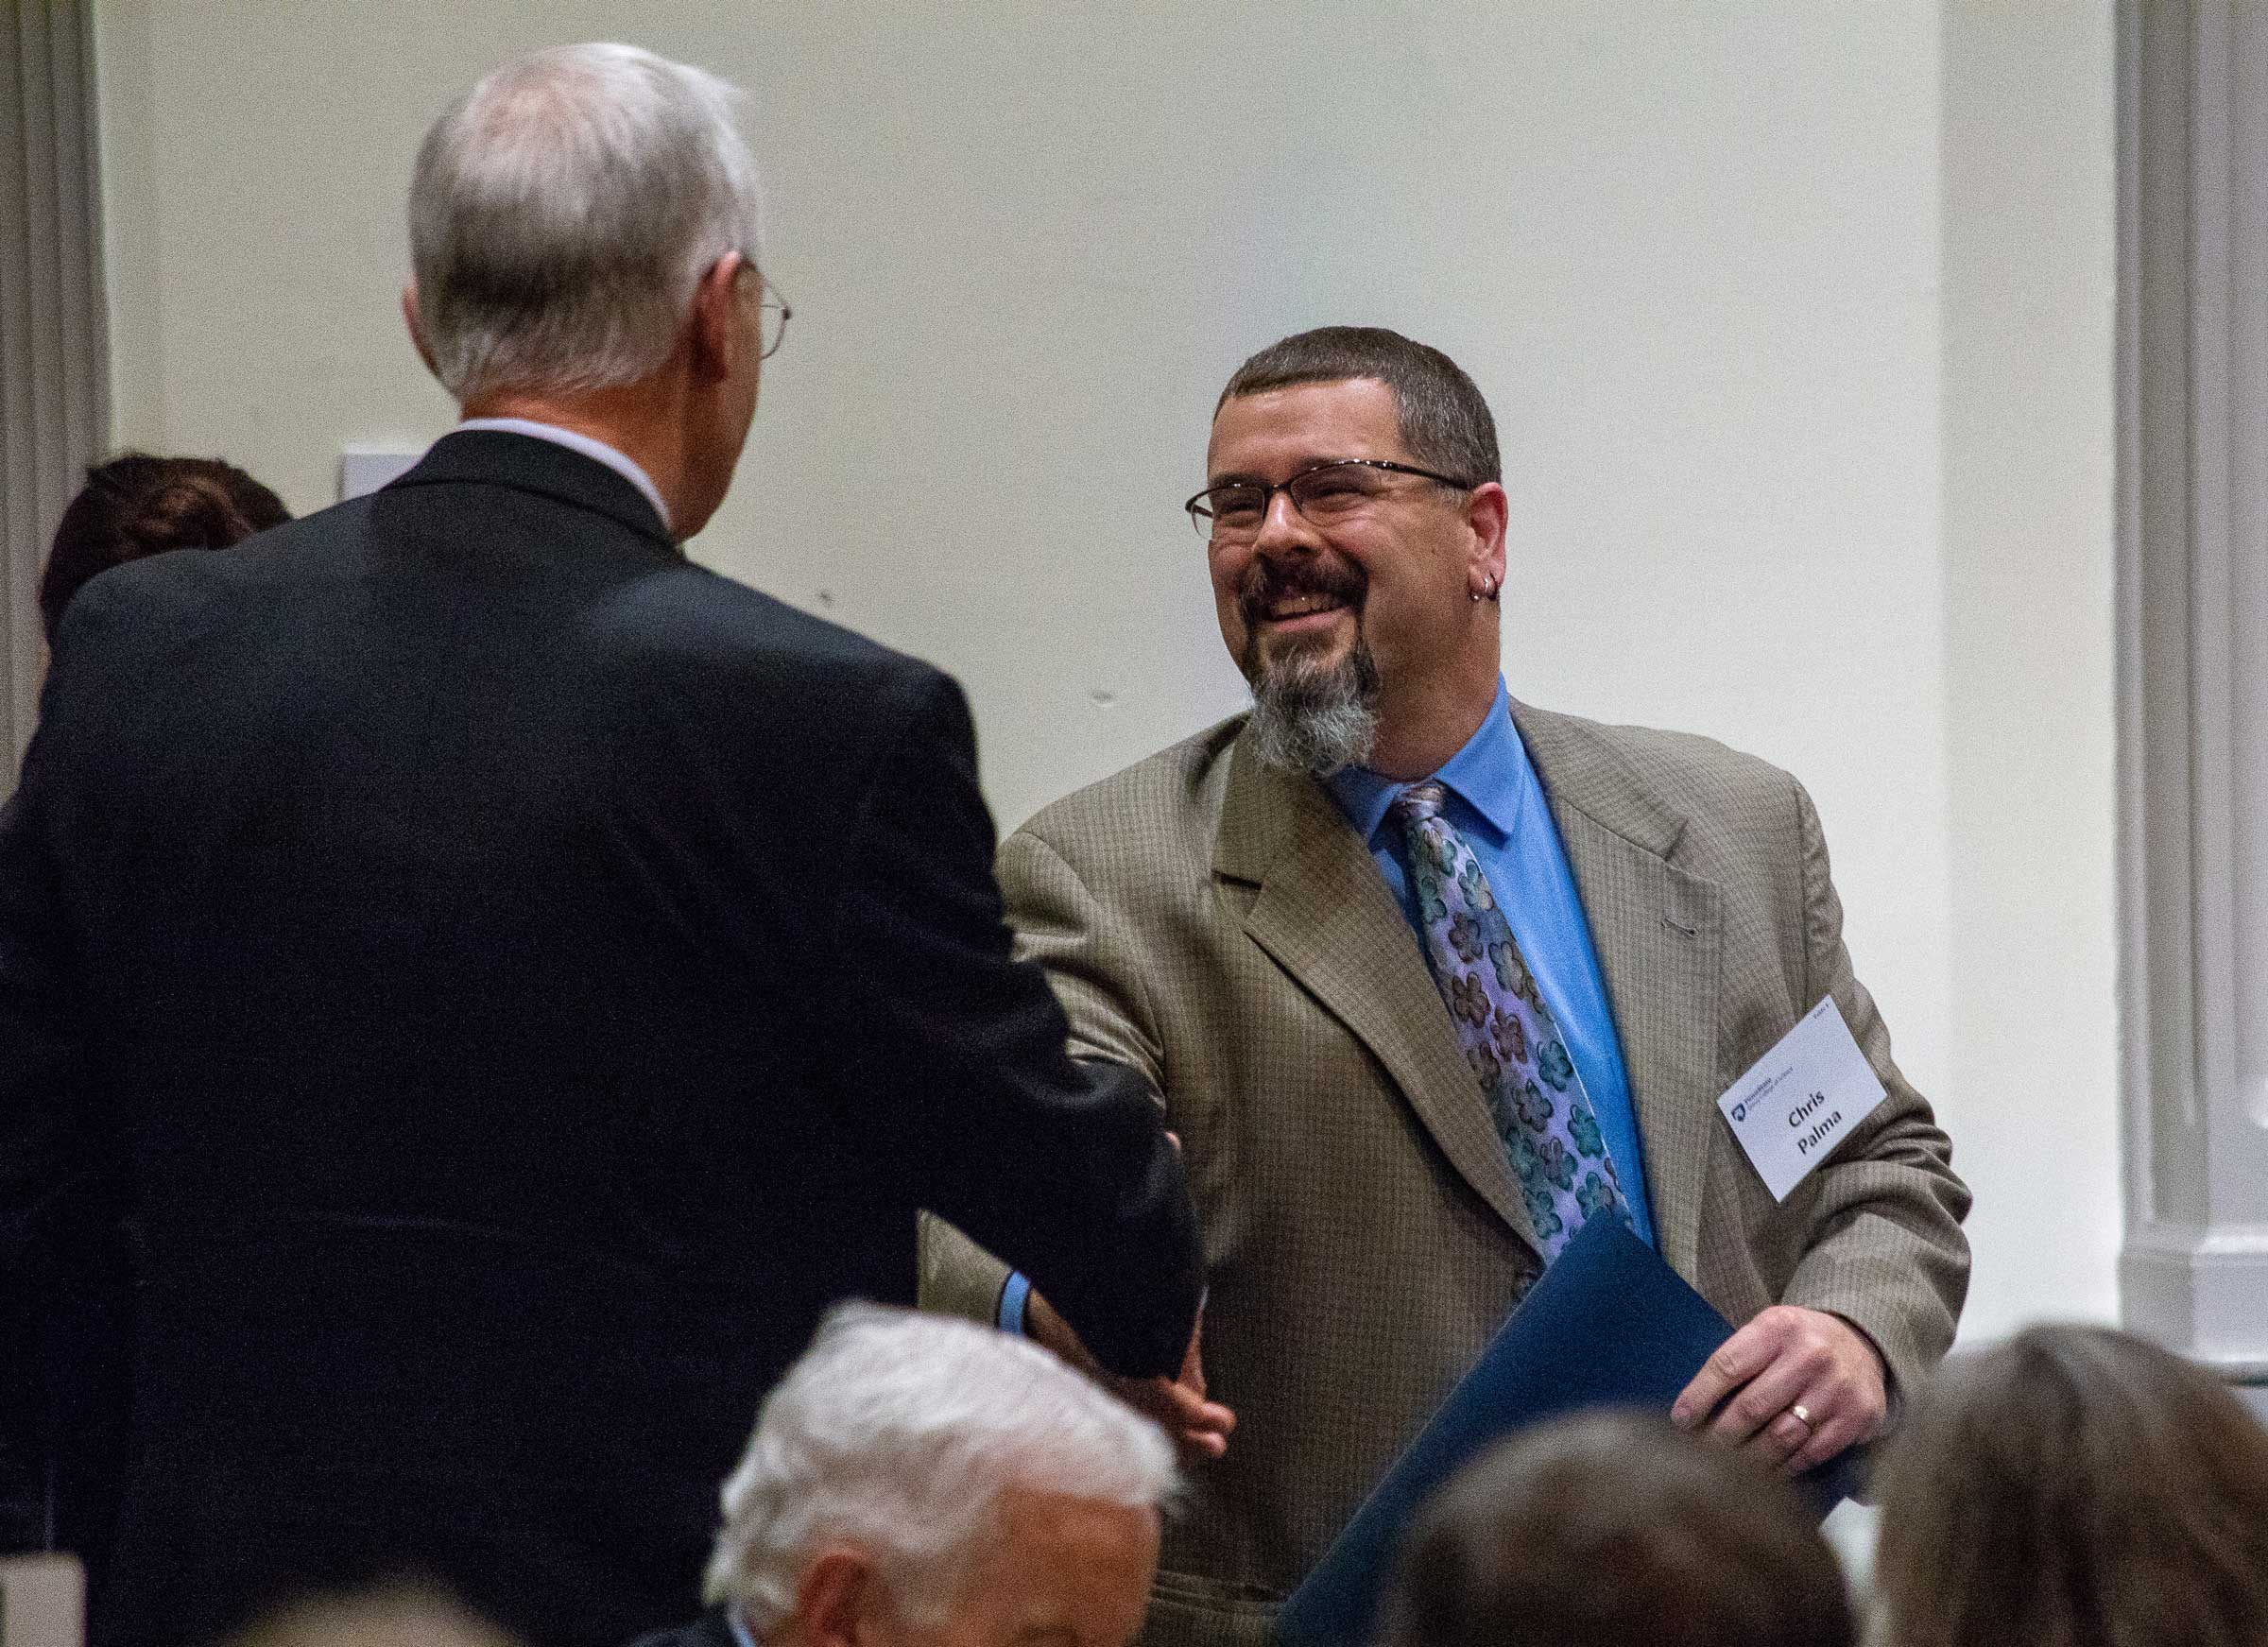 Palma receives C.I. Noll Award